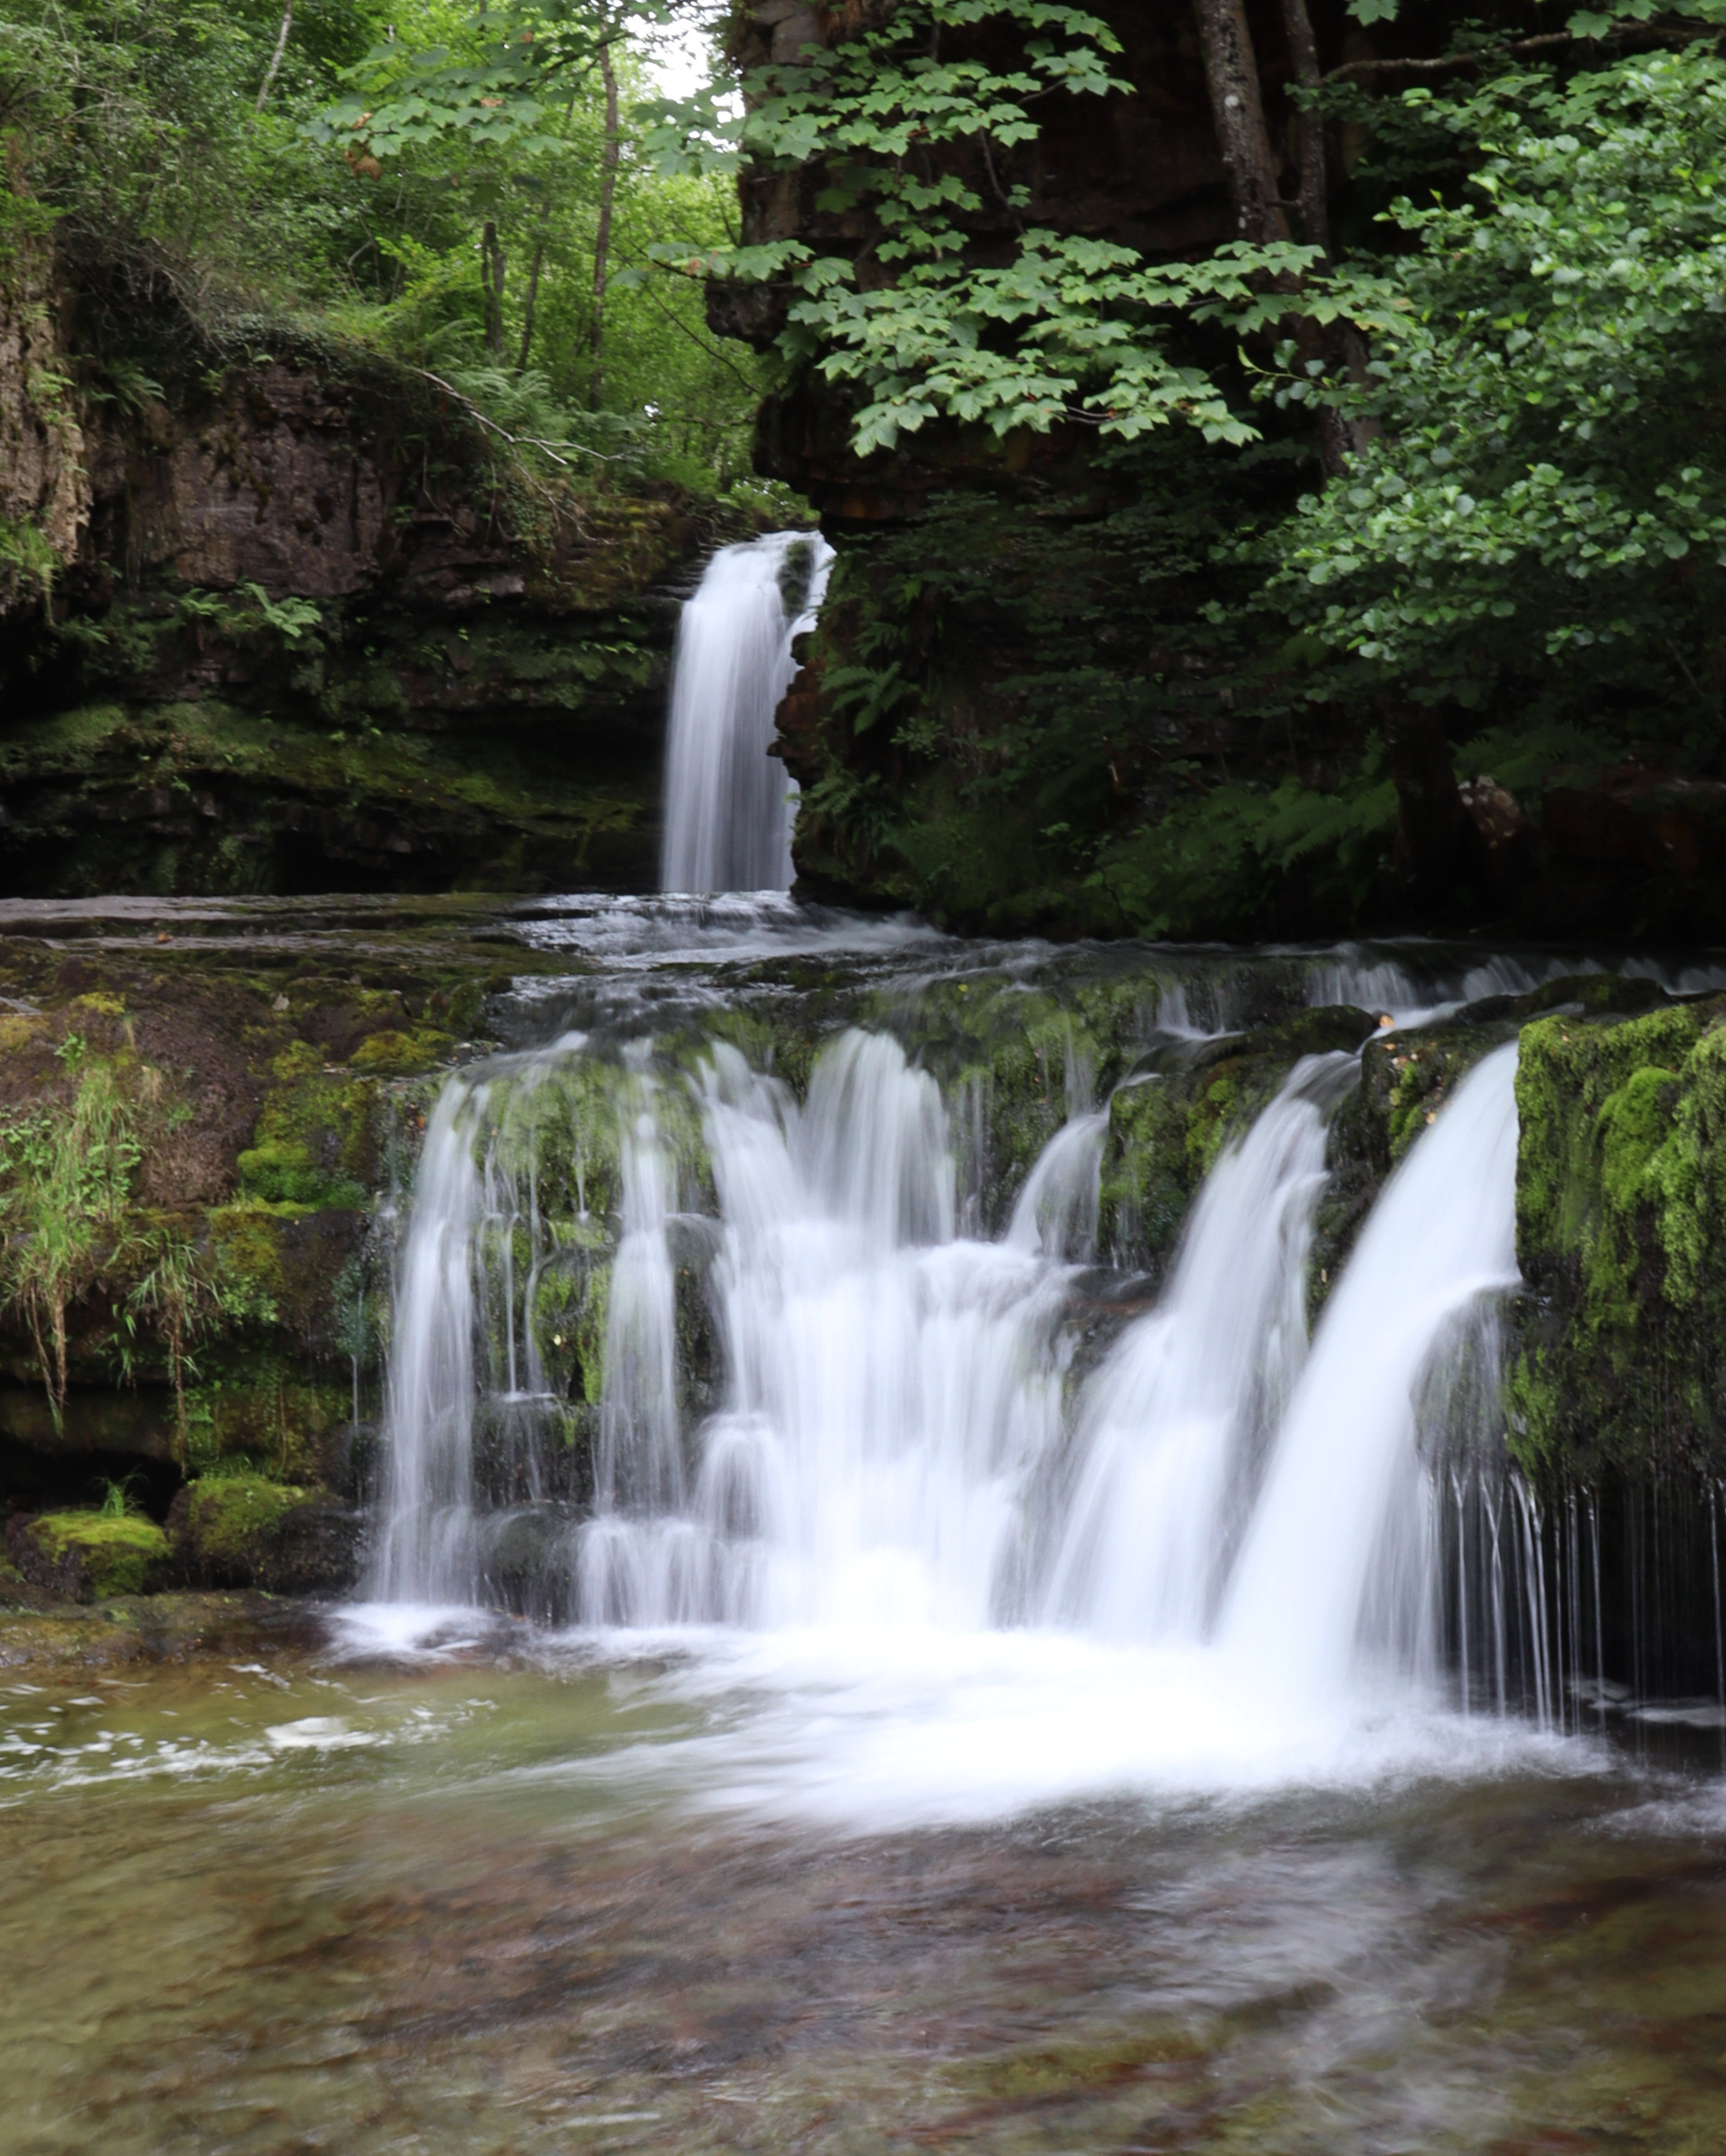 Long exposure shot of a waterfall in the distance feeding into a smaller drop in the foreground.